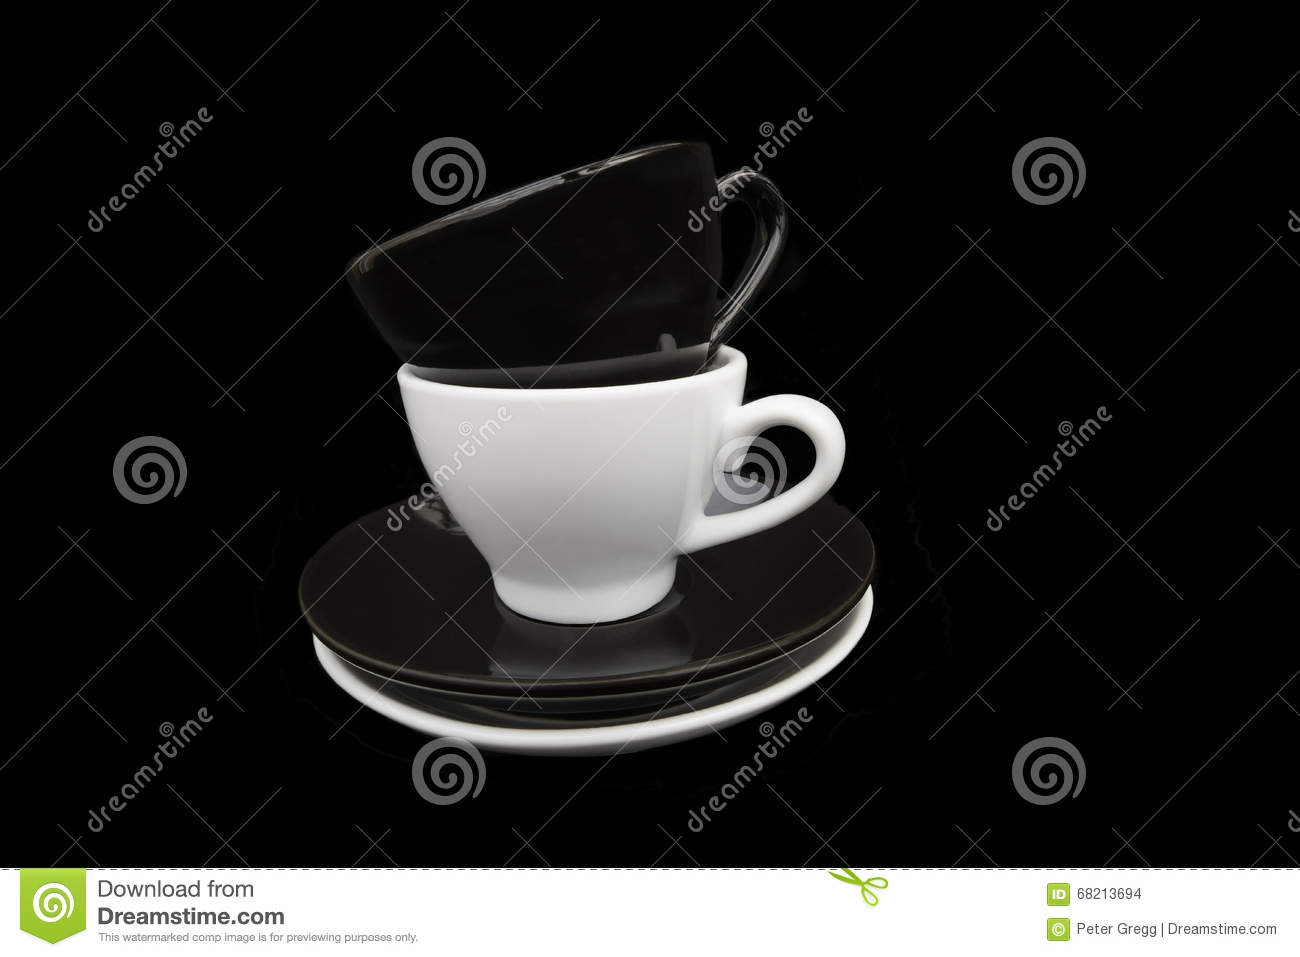 Black and White coffee cupsBlack and White coffee cups